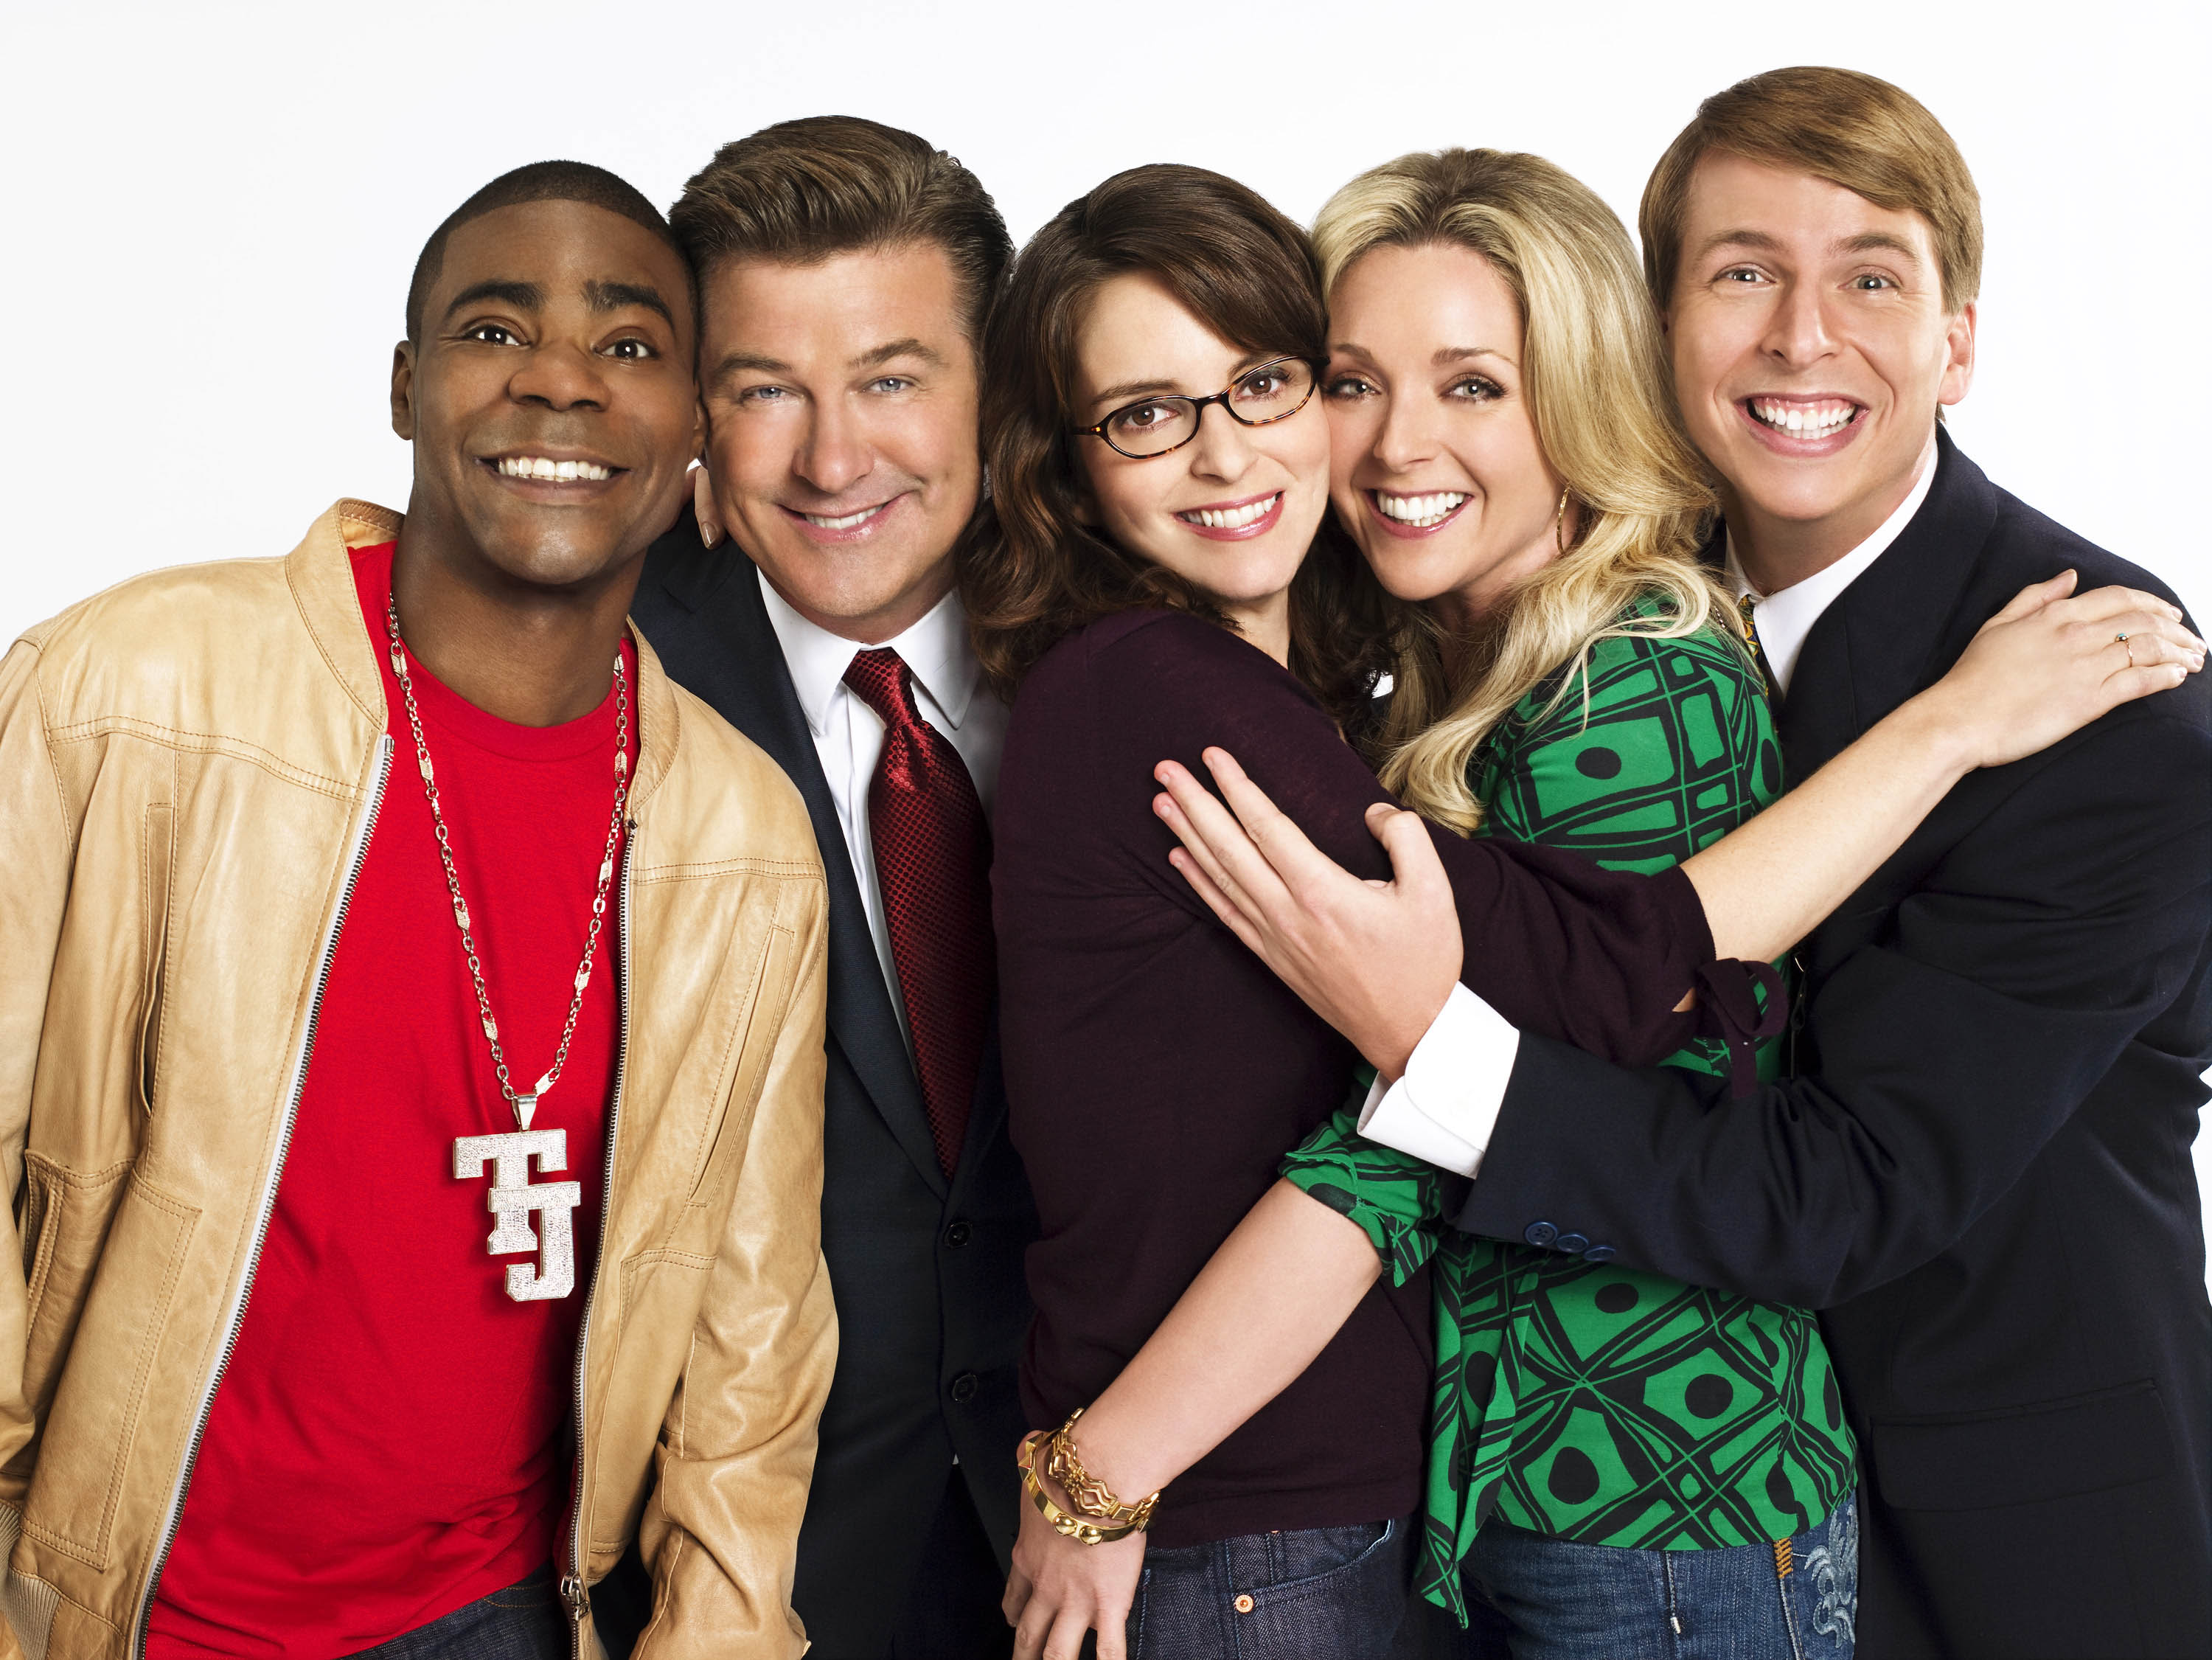 """30 Rock,"" which stars, from left, Tracy Morgan, Alec Baldwin, Tina Fey, Jane Krakowski and Jack McBrayer, took home Emmys this year for best comedy, writing (Fey) and acting (Fey and Baldwin). (NBC/MCT)"